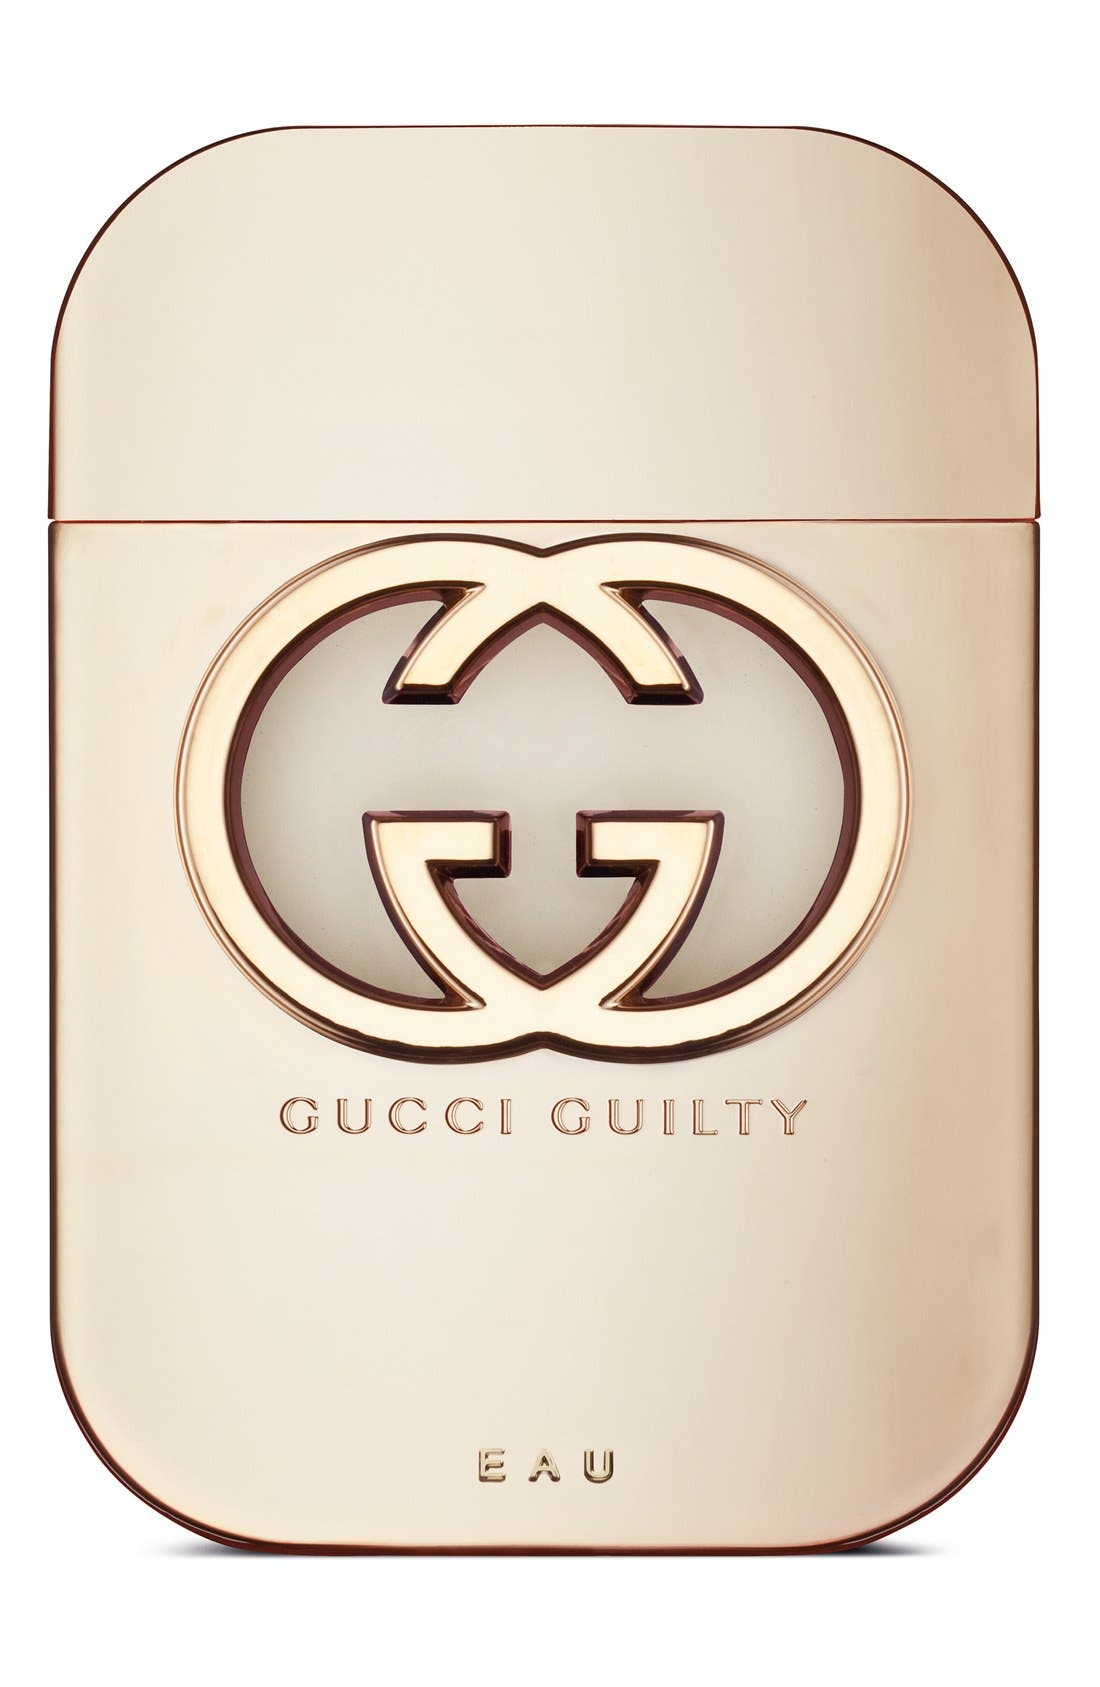 Gucci 'Guilty Eau' Eau de Toilette